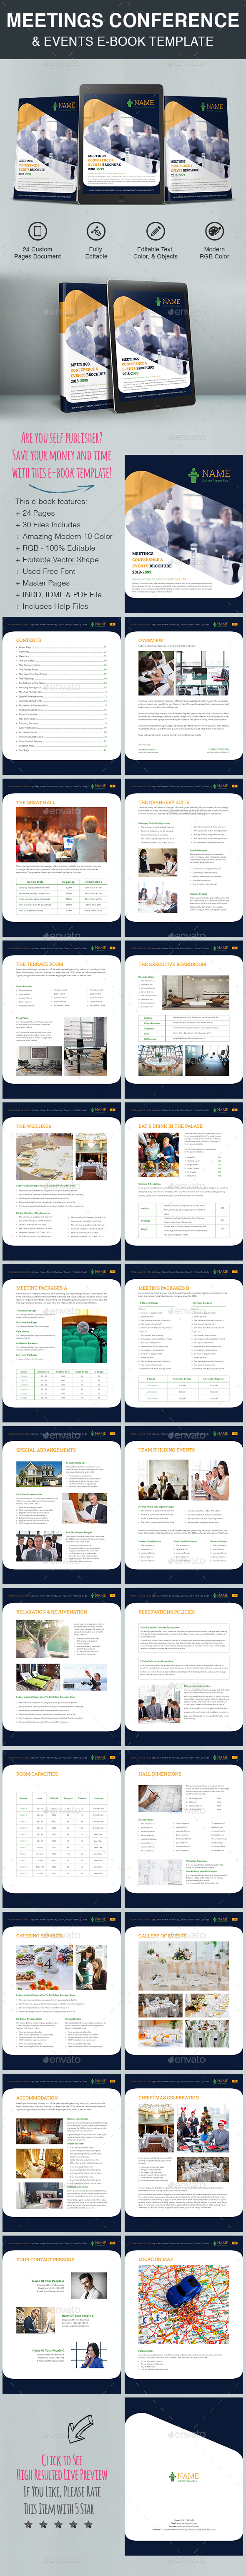 GraphicRiver Meetings Conference & Events E-Book Template 20407421